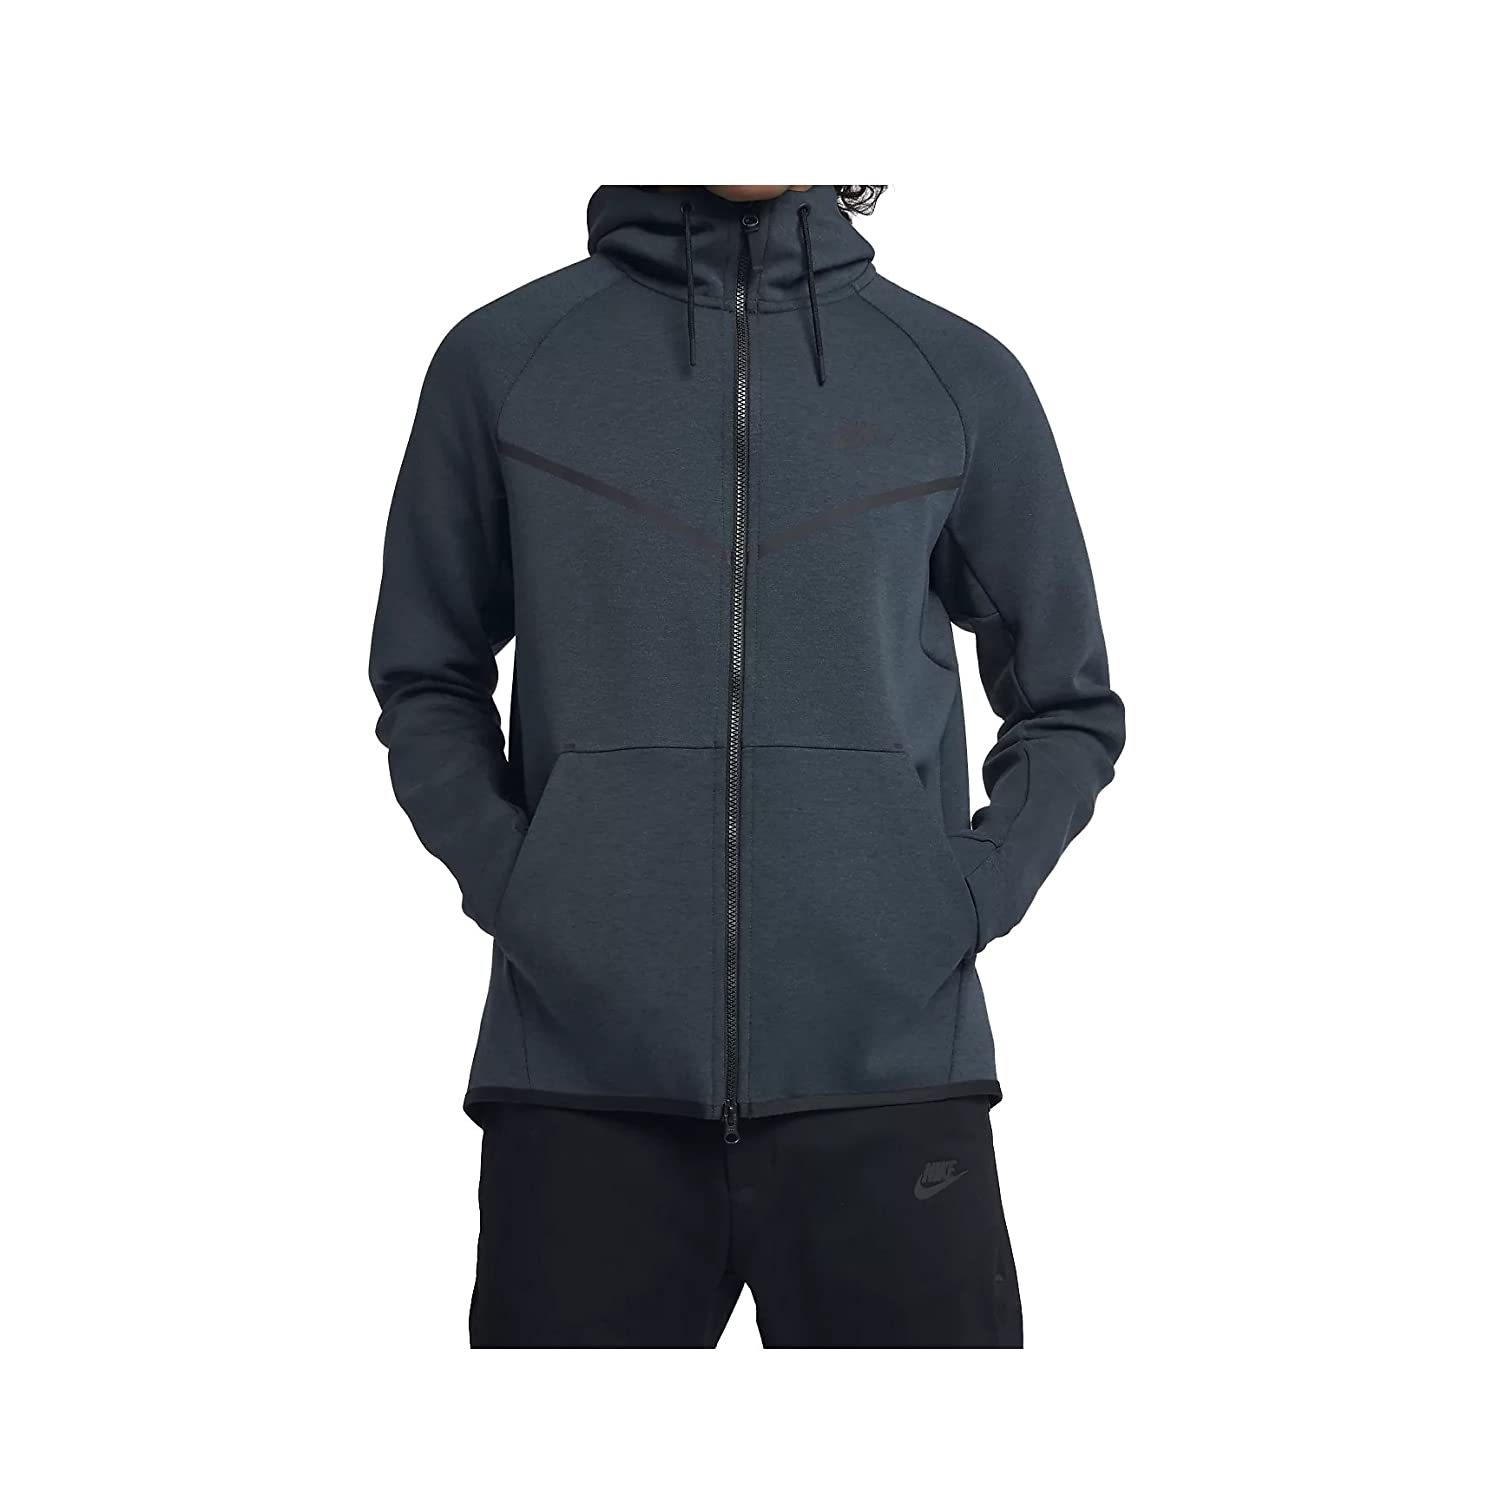 6c20726c2d Amazon.com  Men s Nike Sportswear Windrunner Jacket  NIKE  Clothing